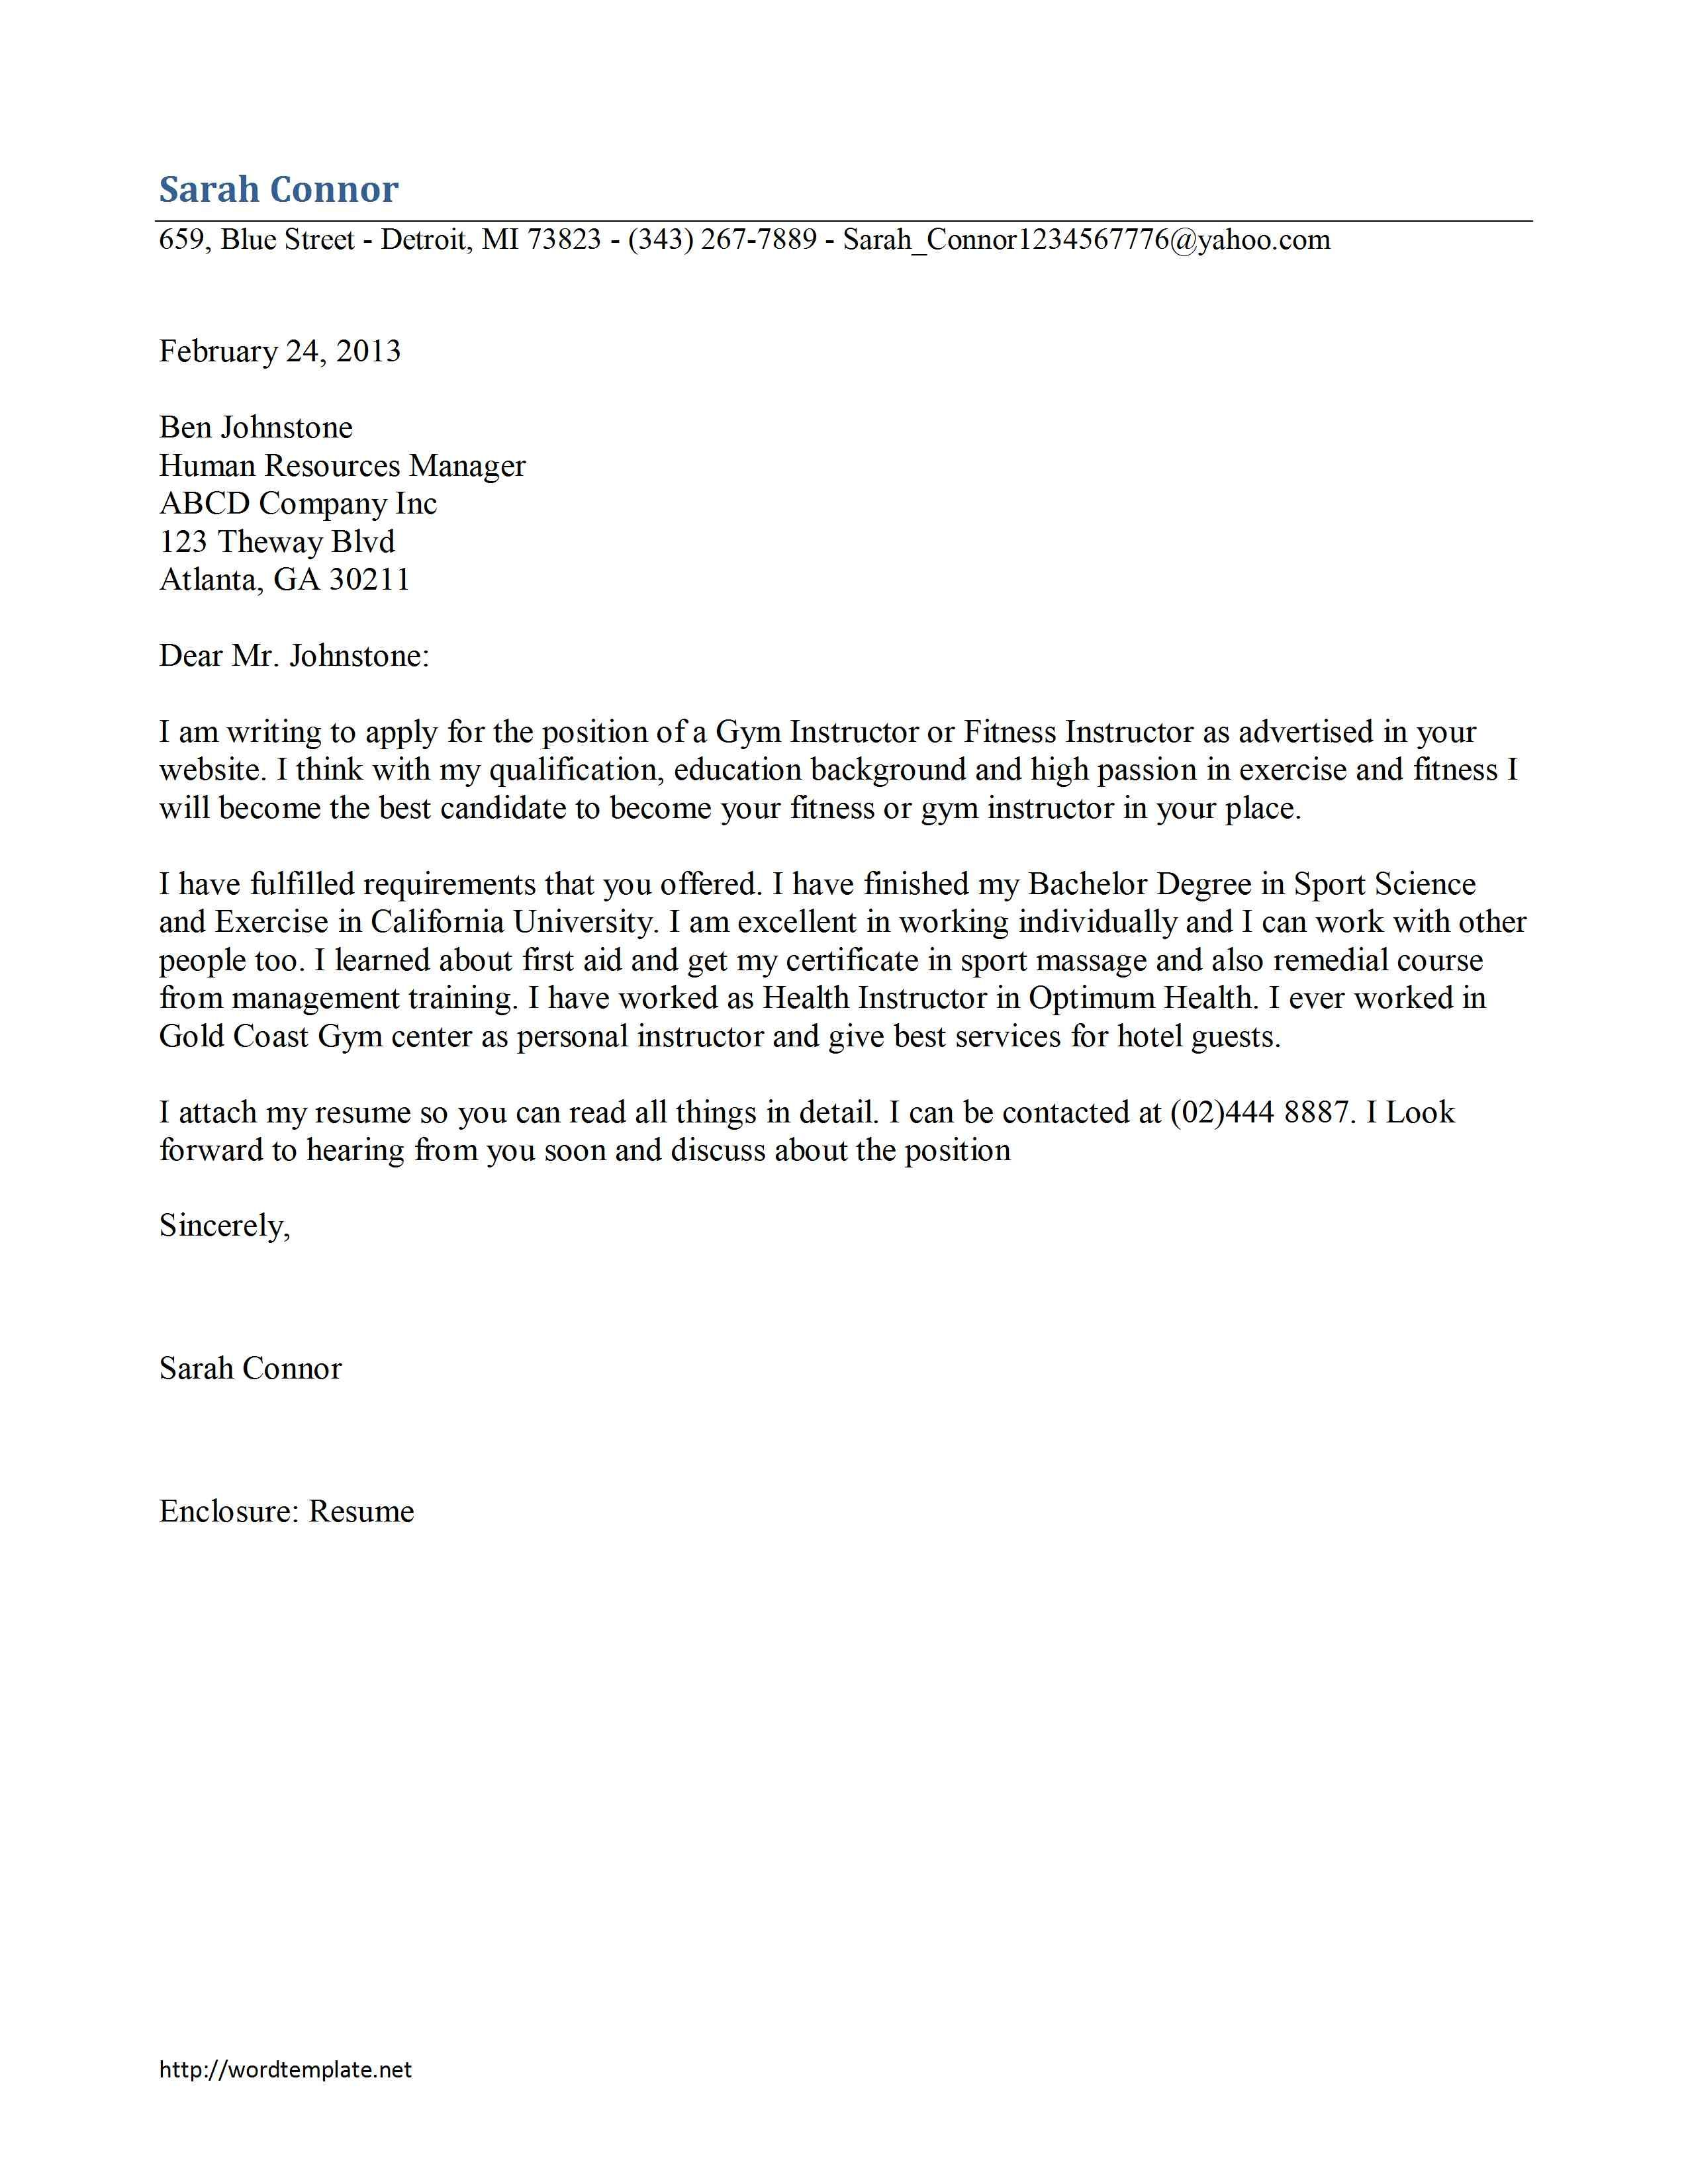 Gym Instructor Cover Letter Template | deedee | Pinterest | Cover ...